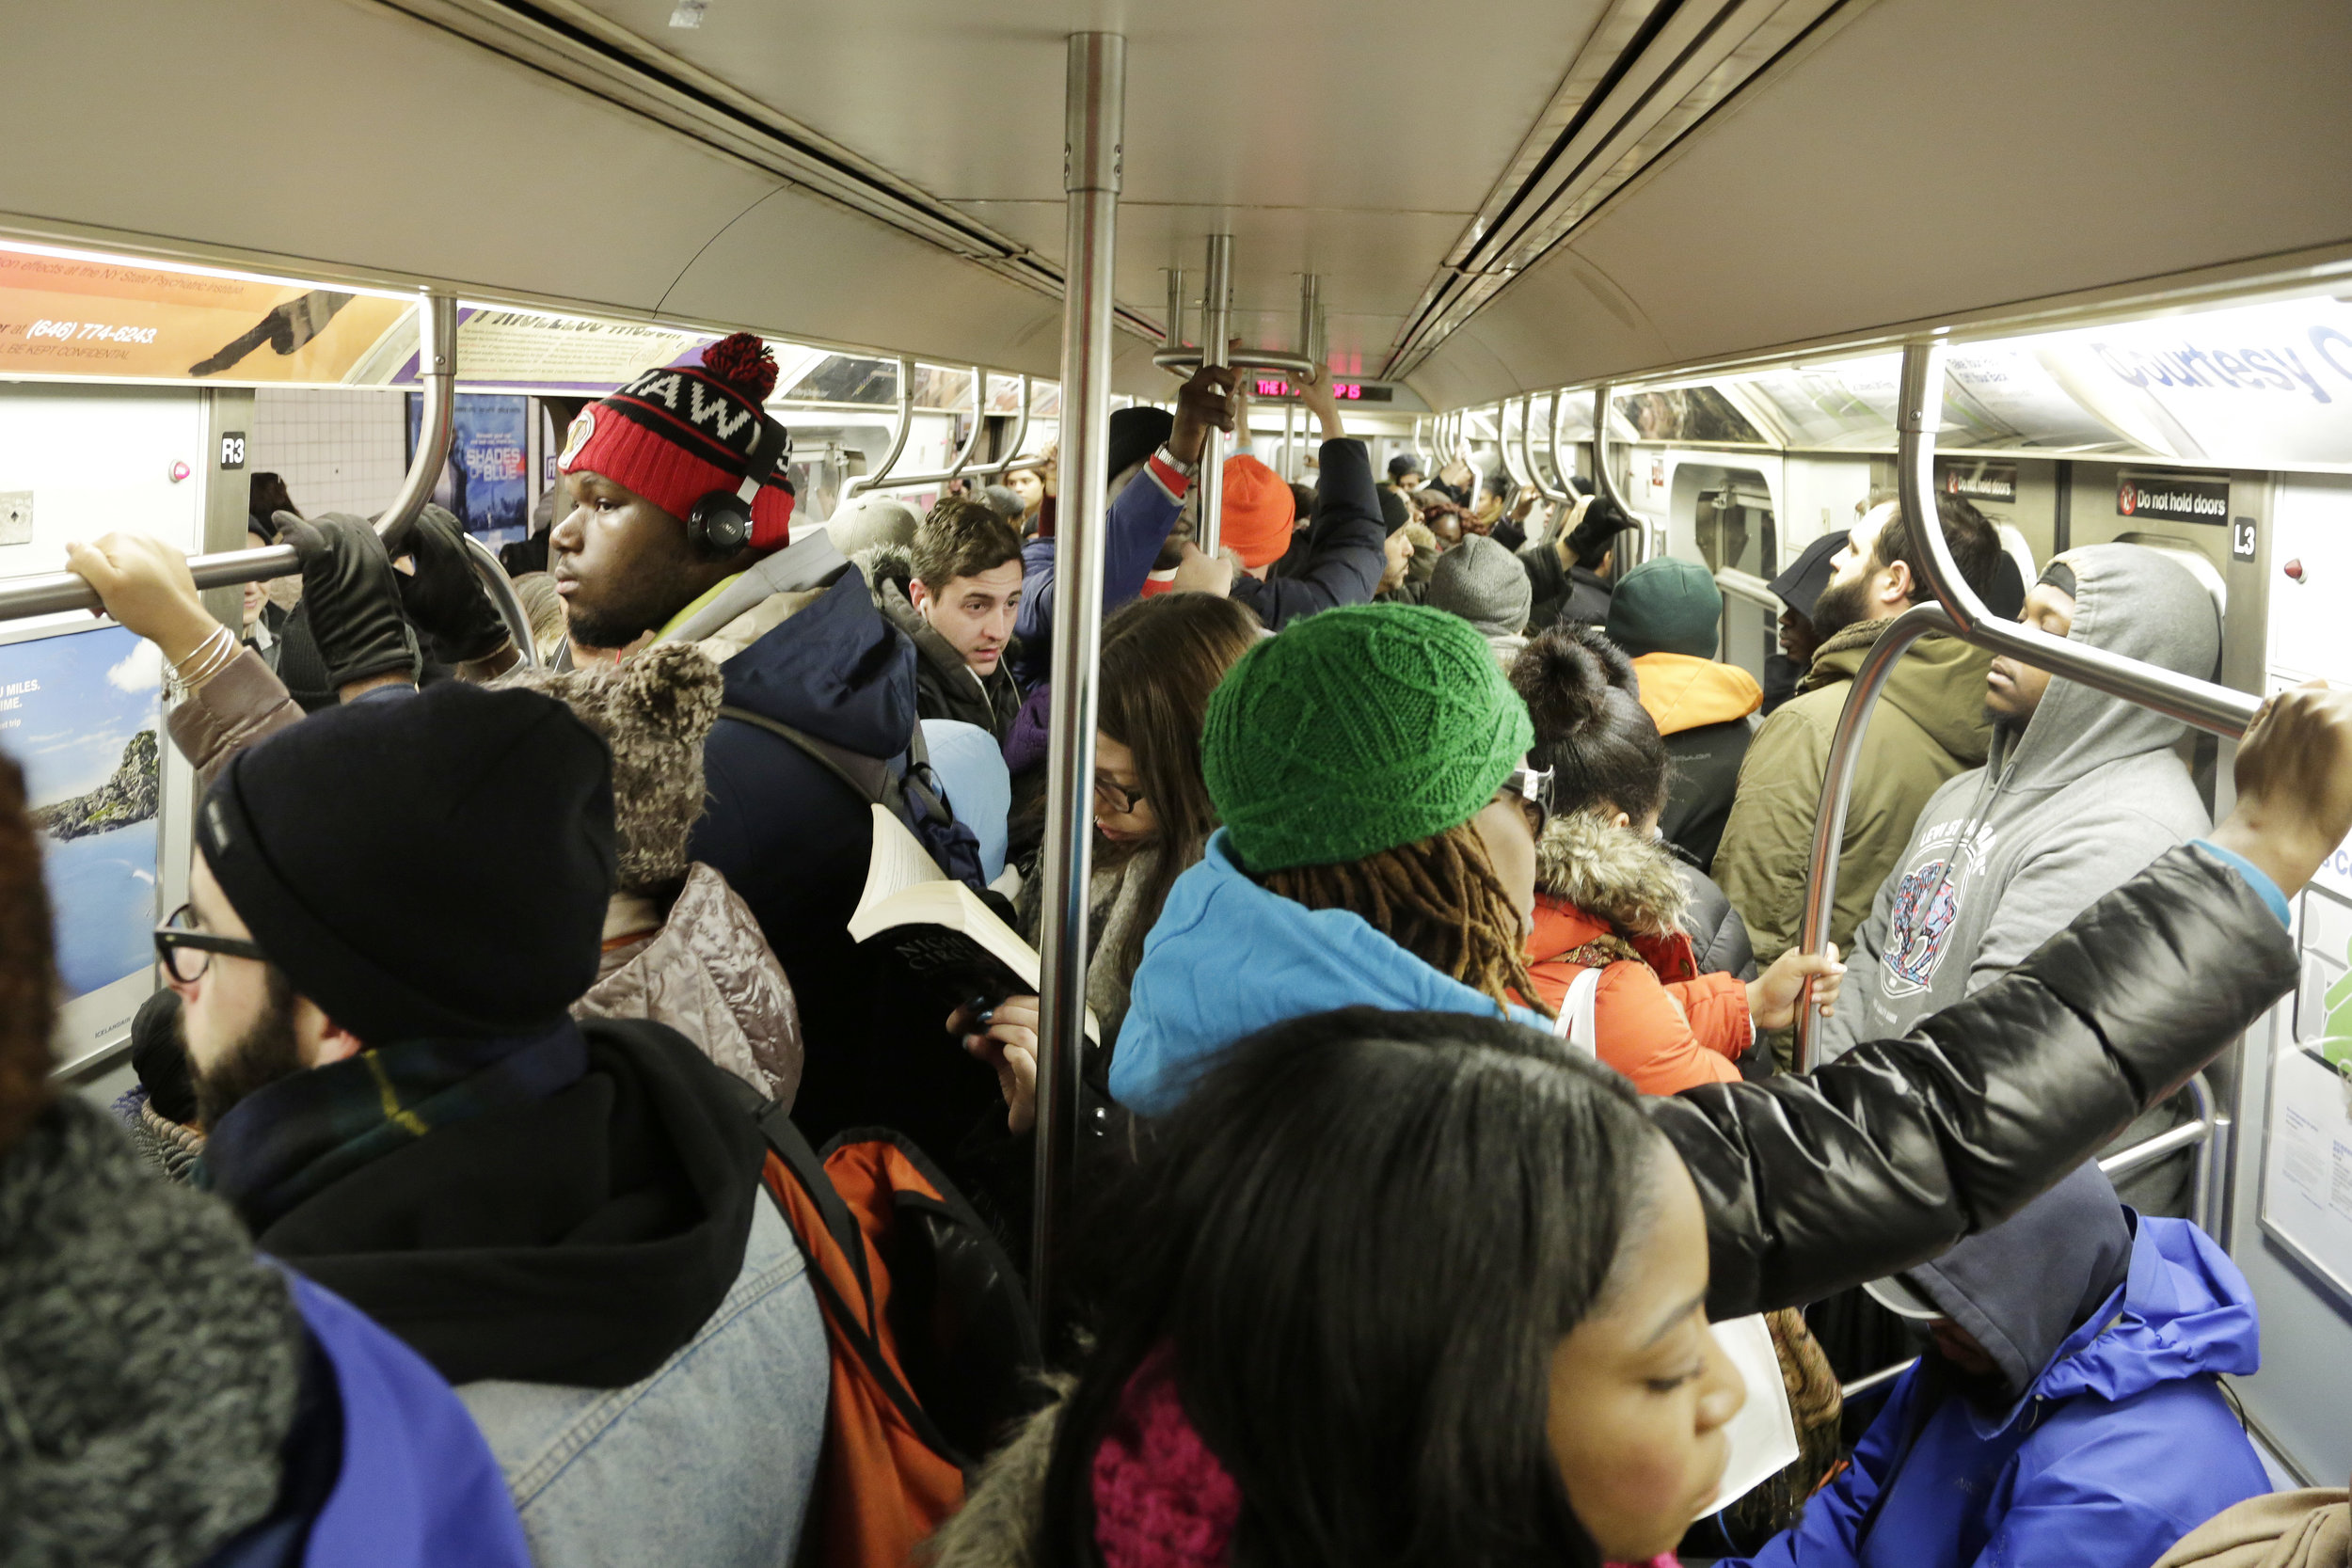 Commuters cram into a crowded subway car. AP Photo.